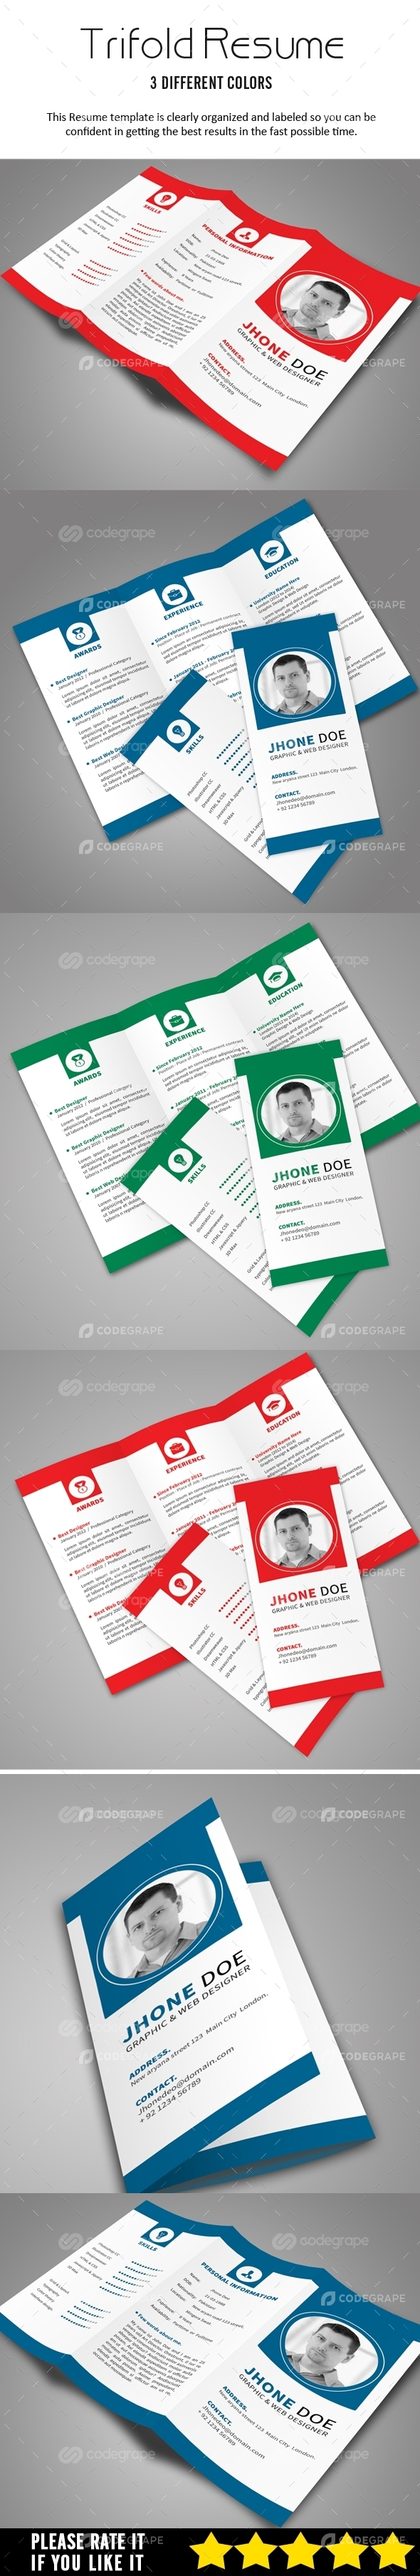 Resume Trifold